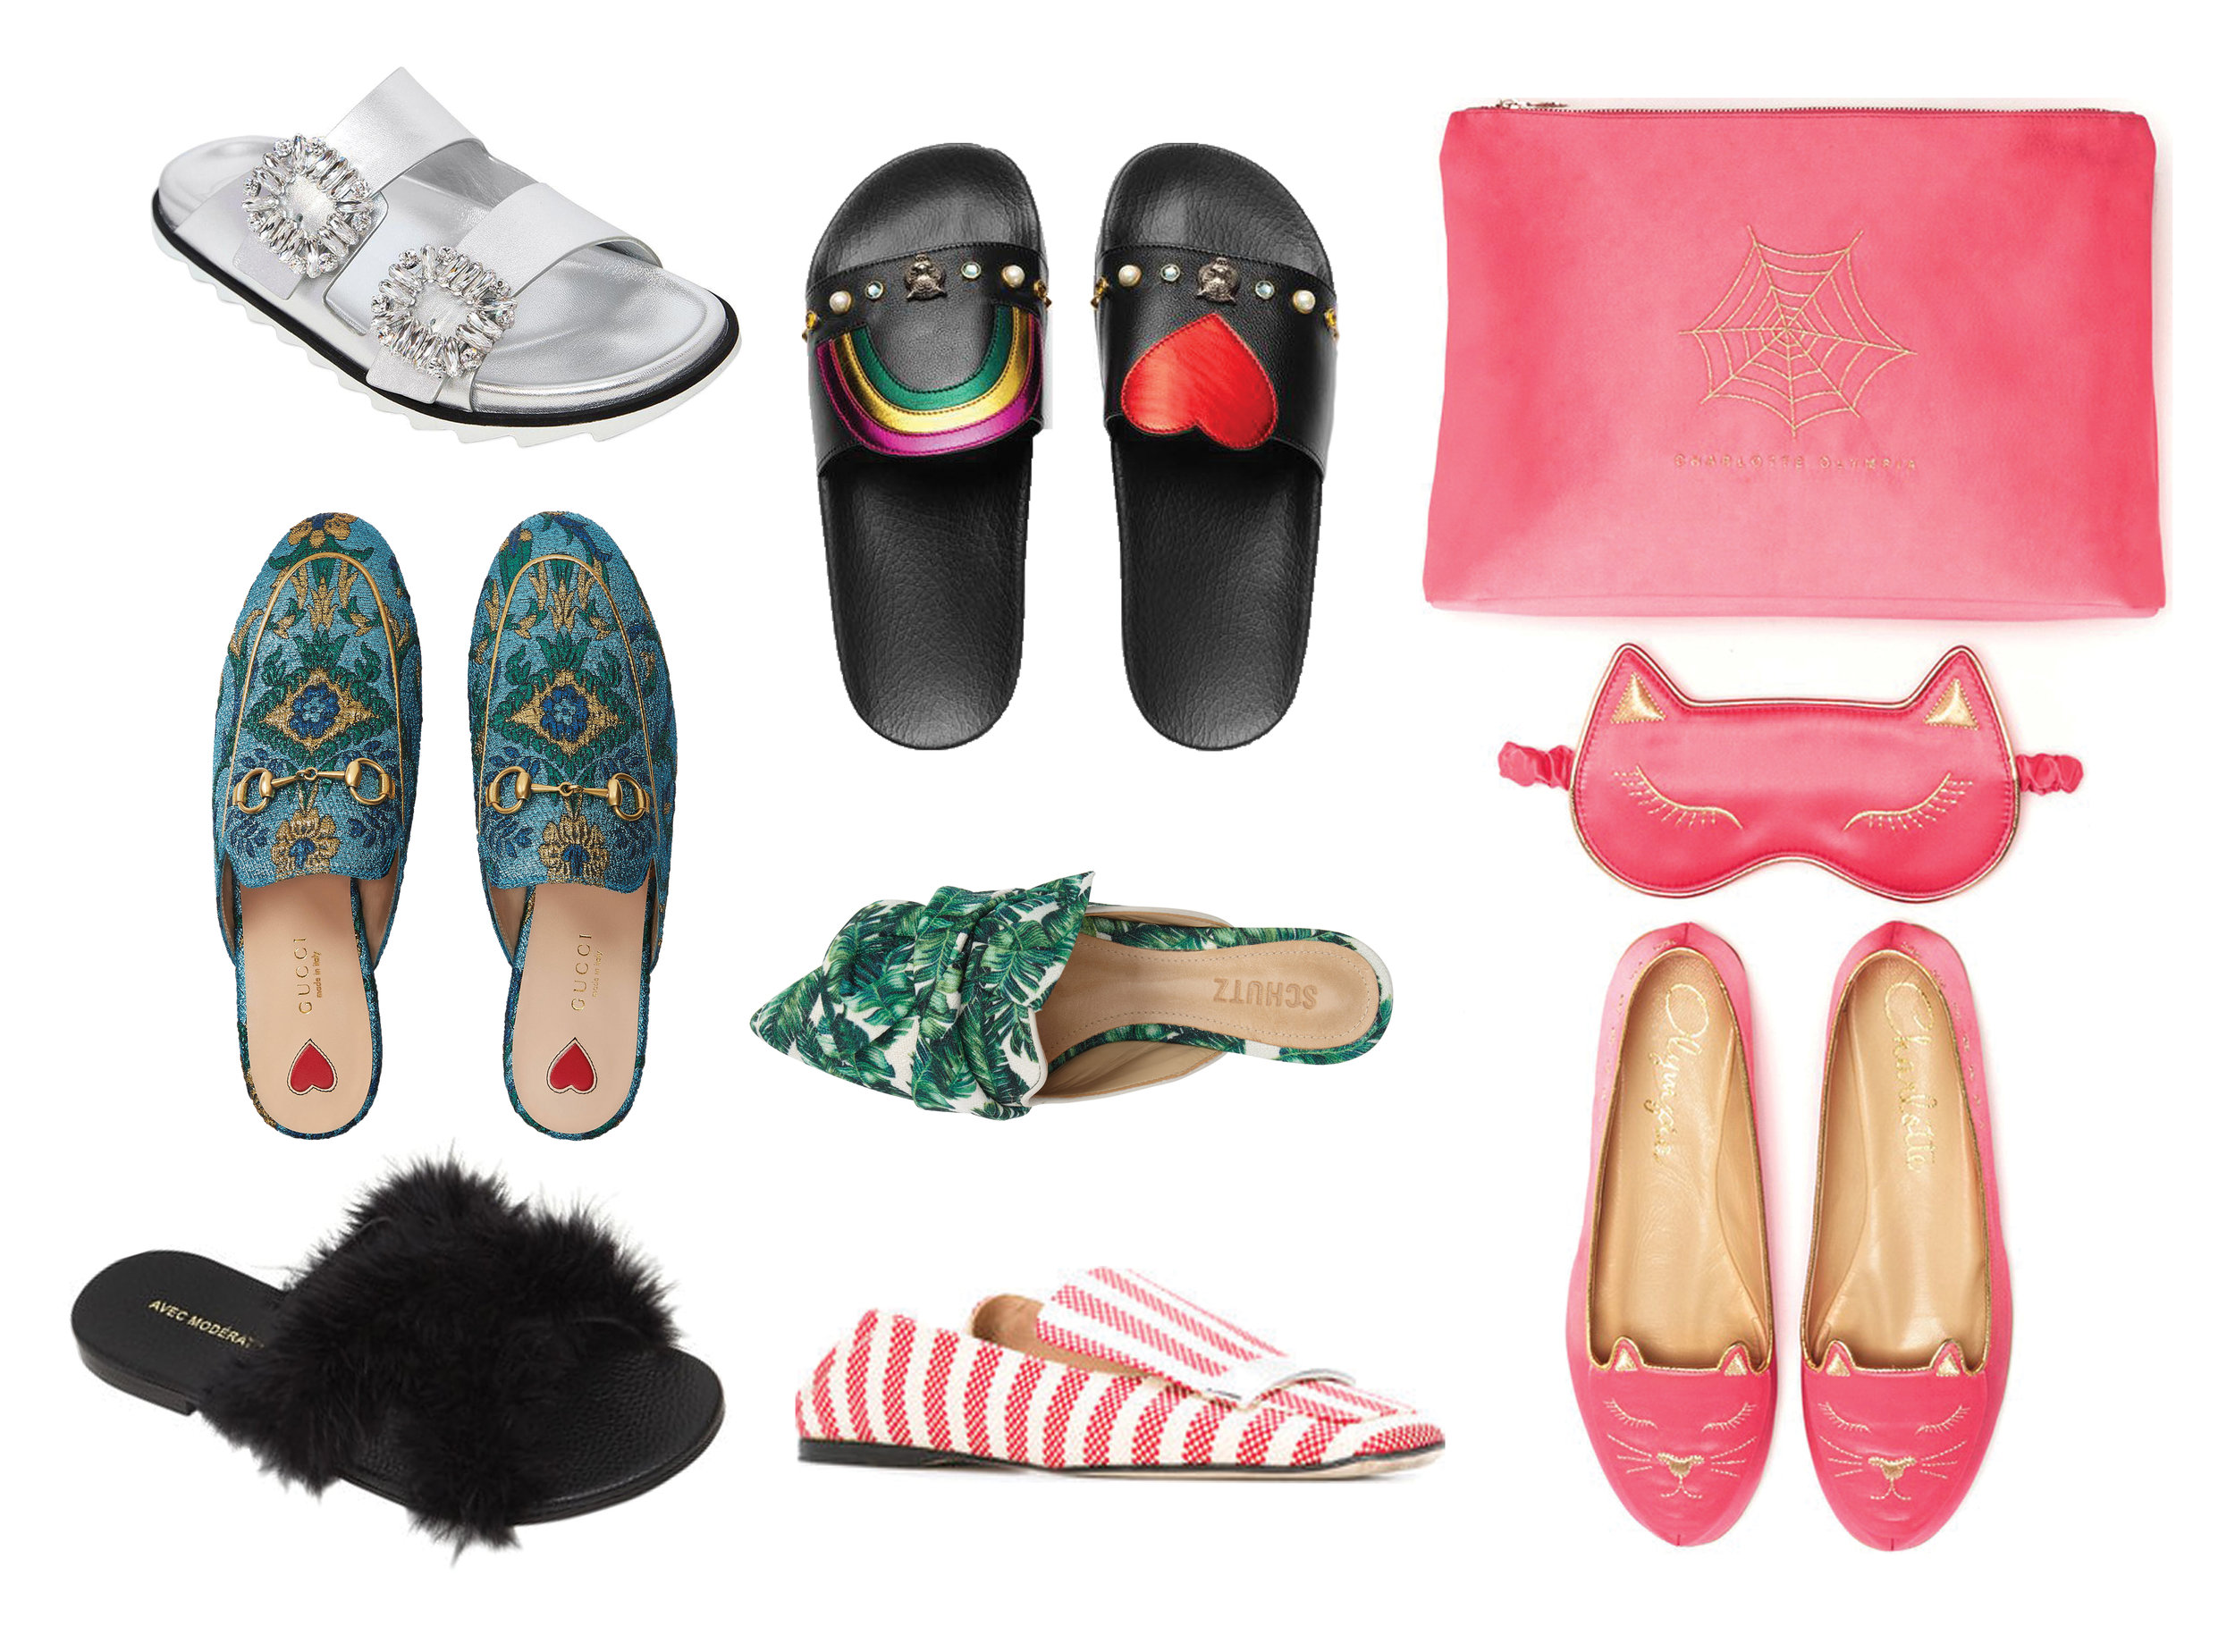 From upper left to right, Roger Vivier Viv Metallic Leather  Sandal  | Gucci Pursuit Heart & Rainbow Leather  Slides  | Charlotte Olympia Cat Nap  Set  | Gucci Princetown Brocade  Slippers  | Schutz D'ana  Slide  | Avec Modération St. Tropez Marabou  Sandal  | Sergio Rossi Striped  Slipper